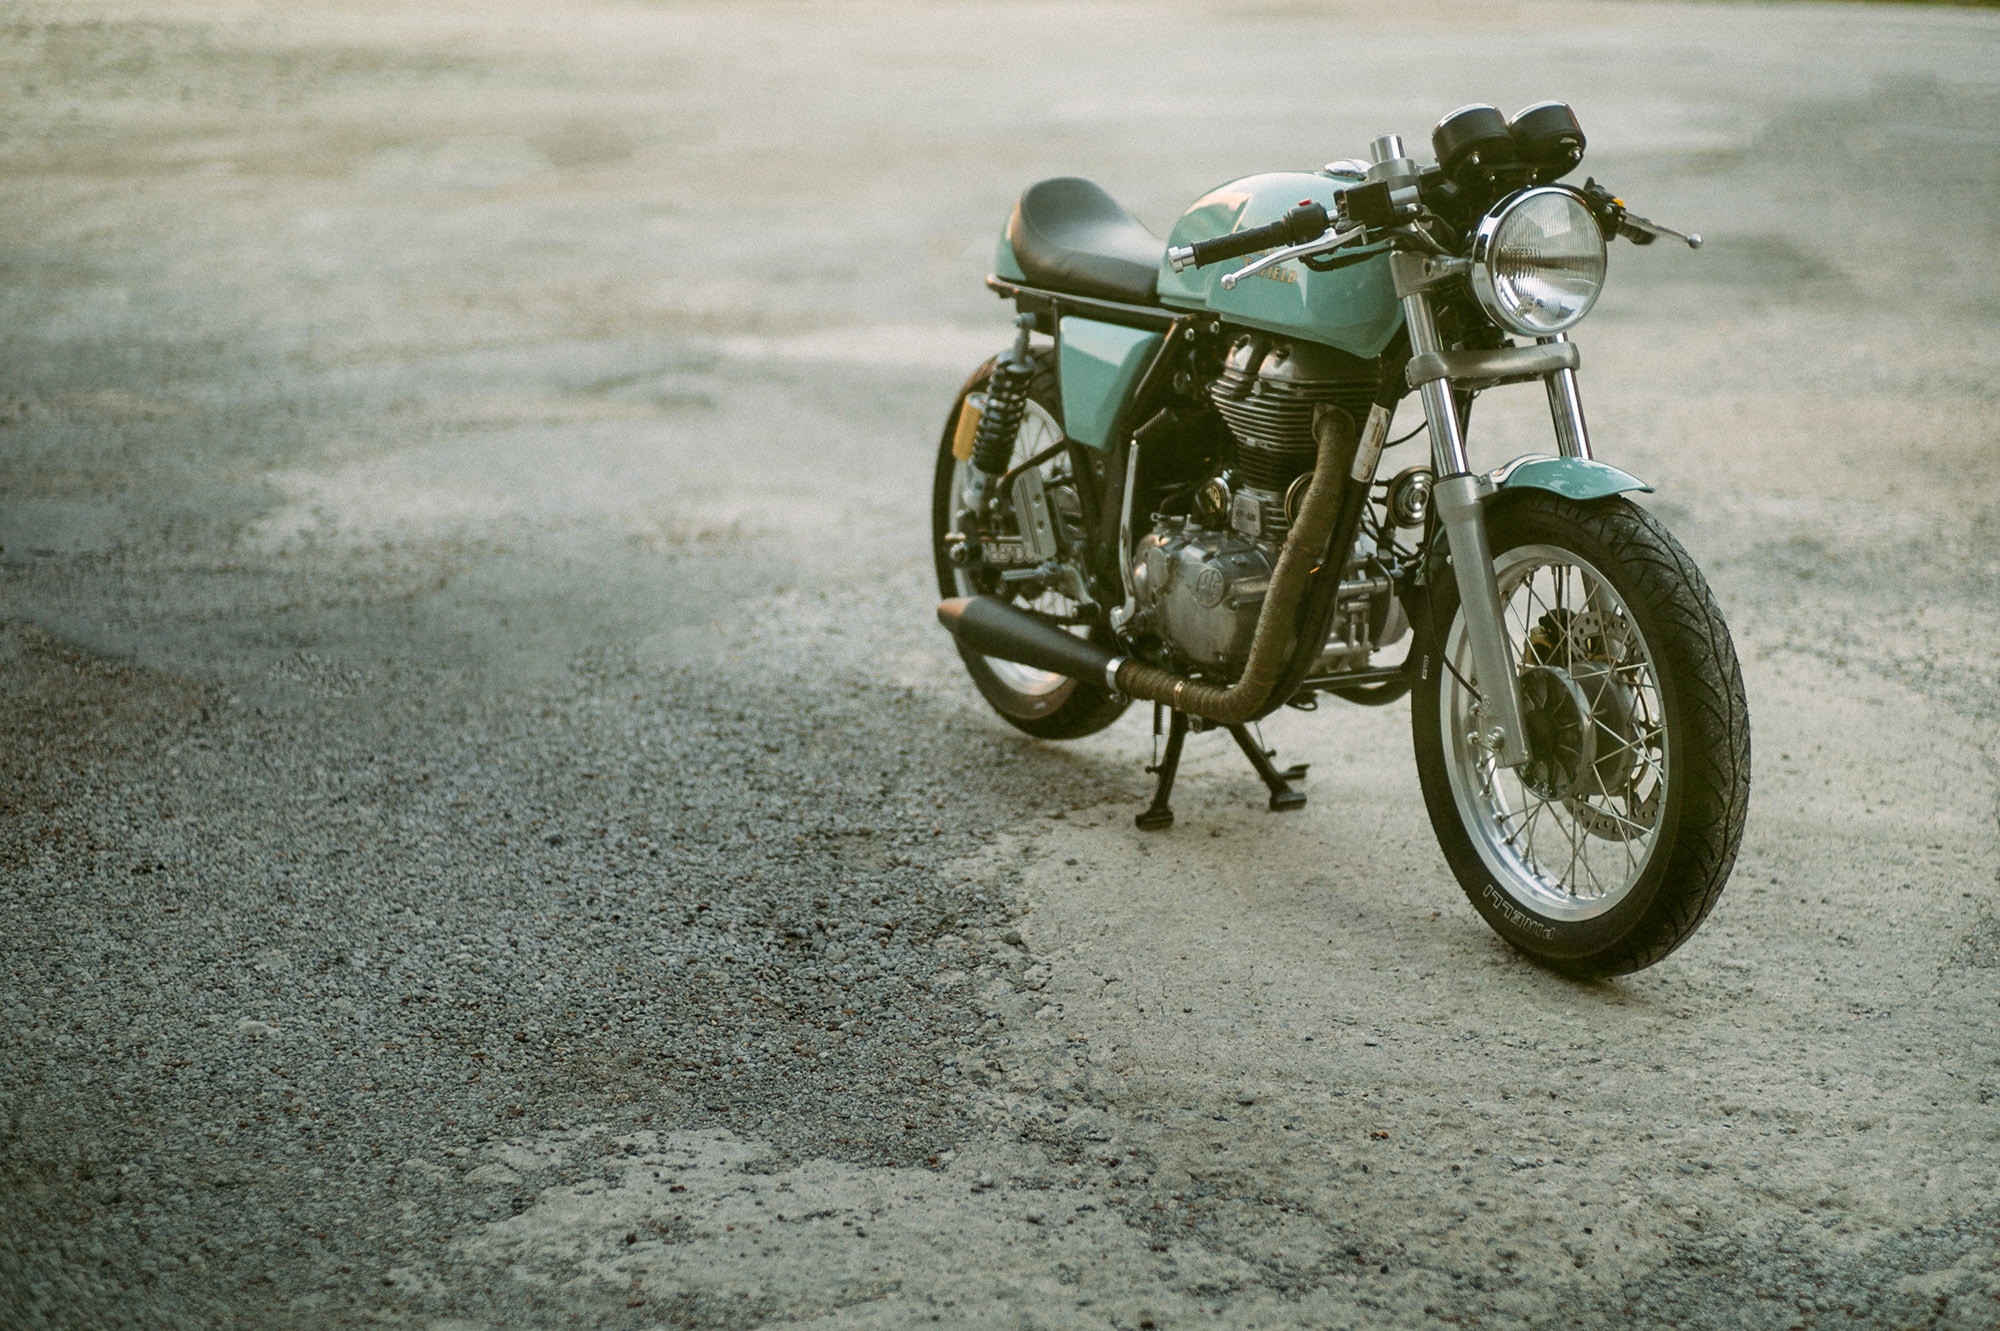 travis_young_royal_enfield_chip_06.JPG